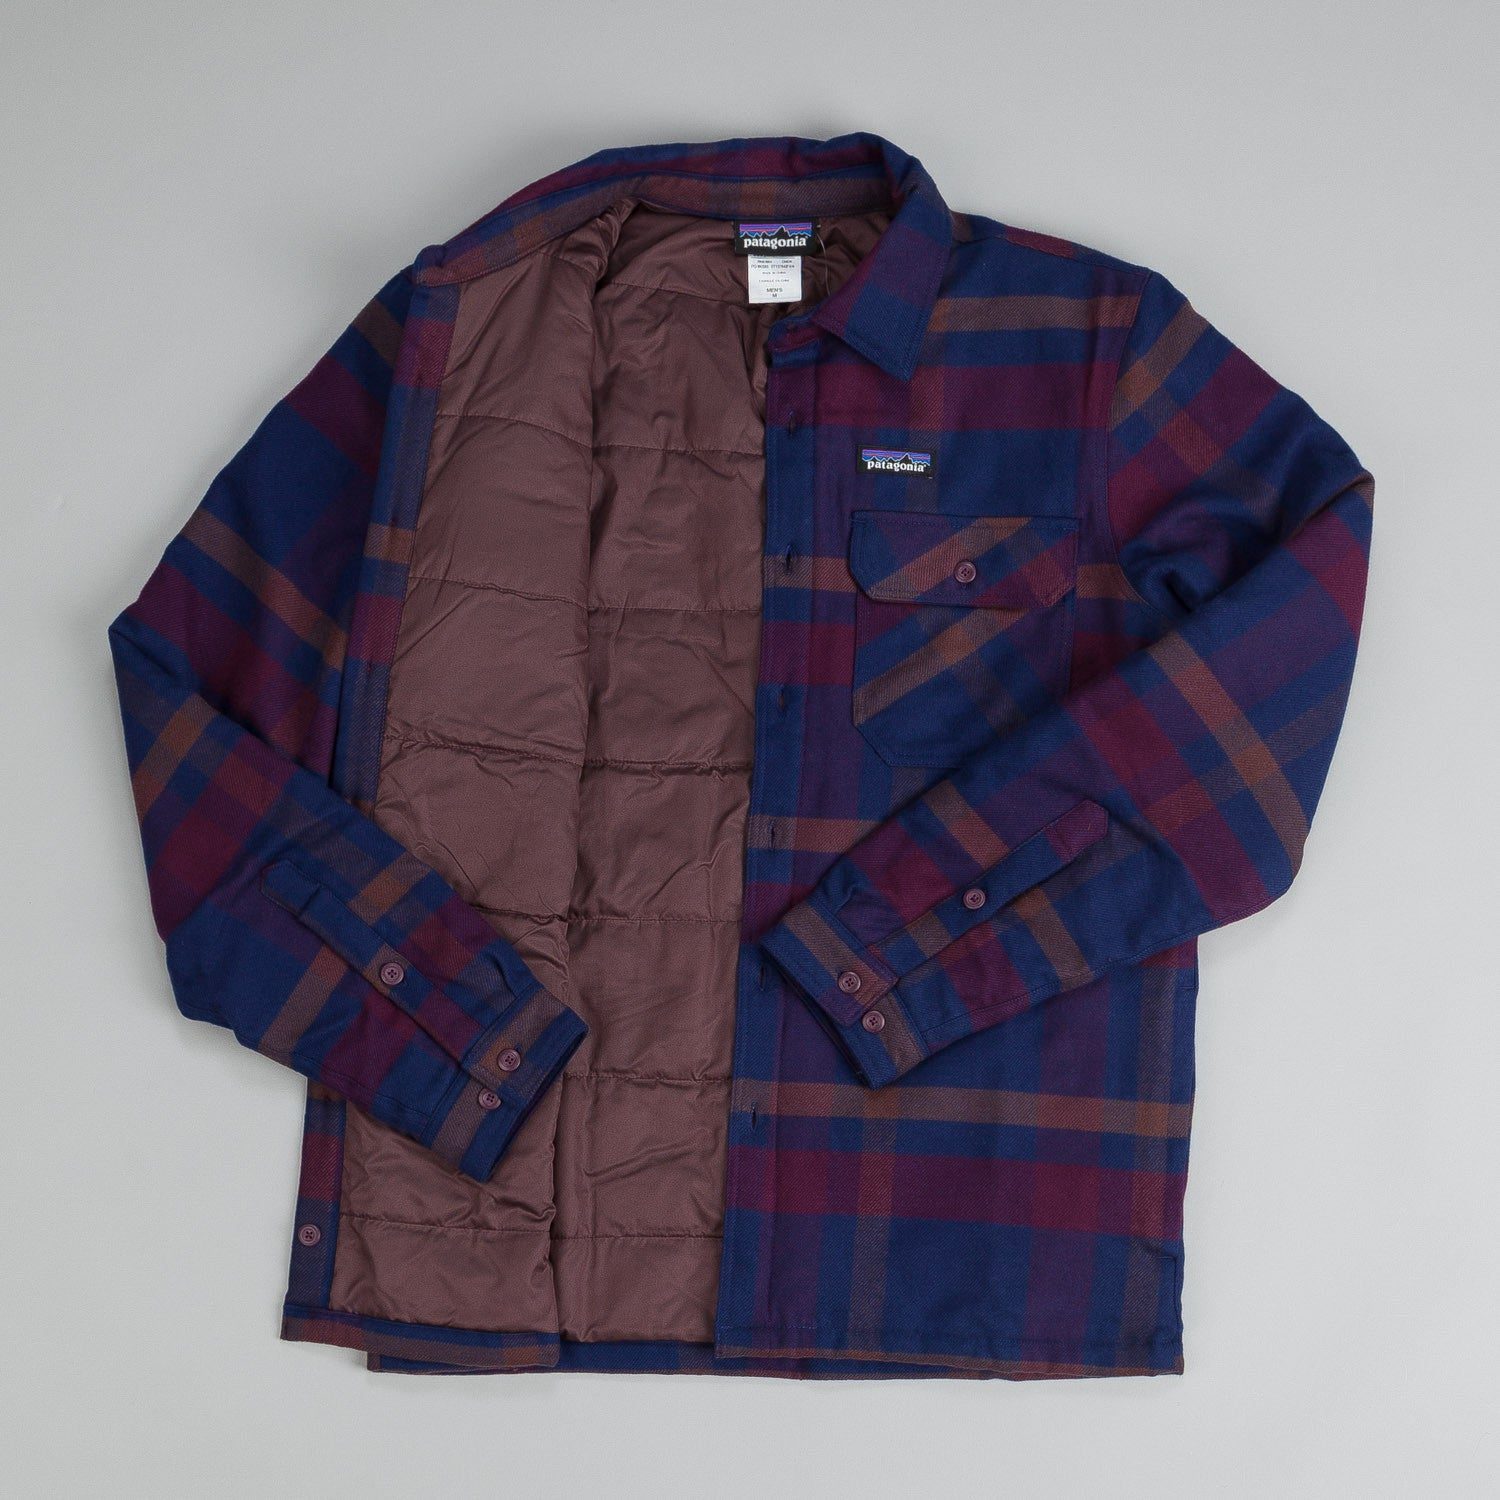 Patagonia Insulated Fjord Flannel Jacket Comstock Dark Currant